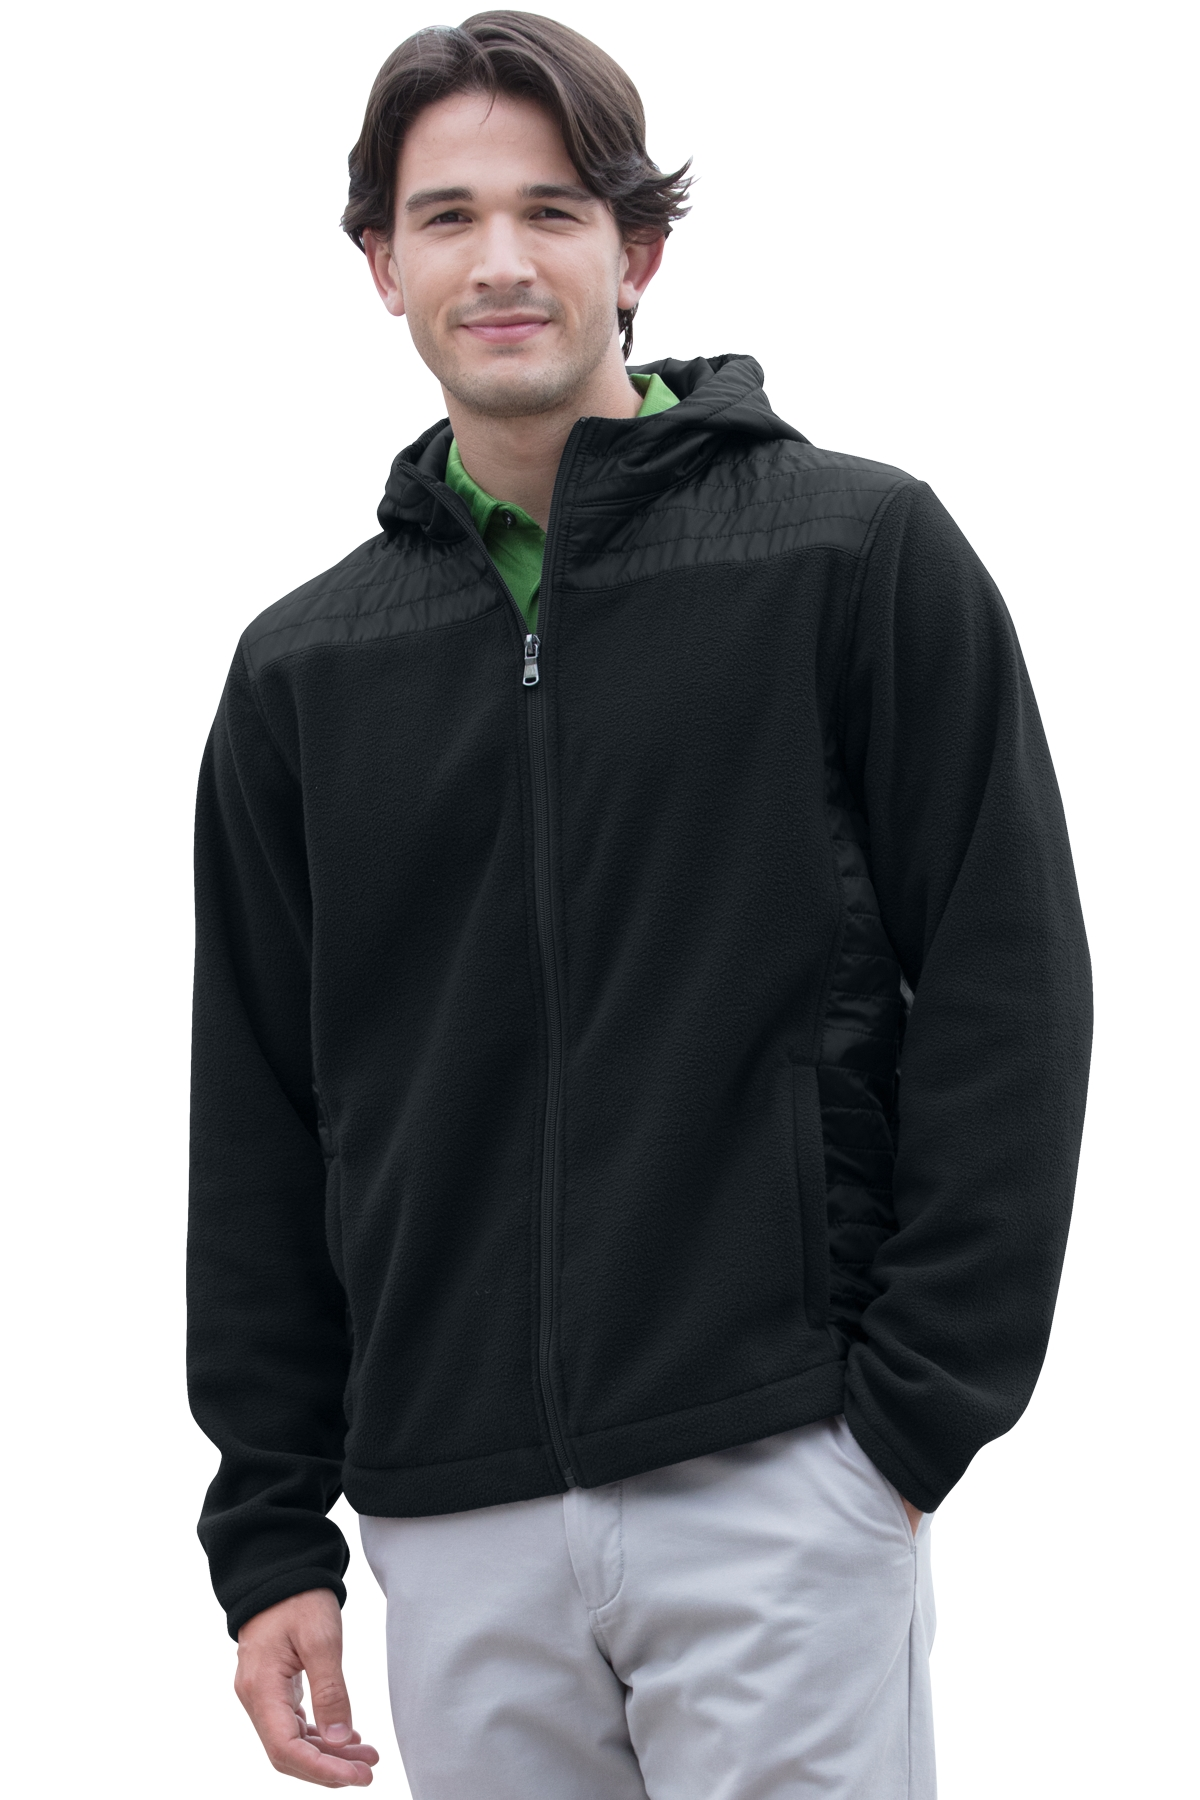 Vantage 3310 - Men's Yukon Jacket